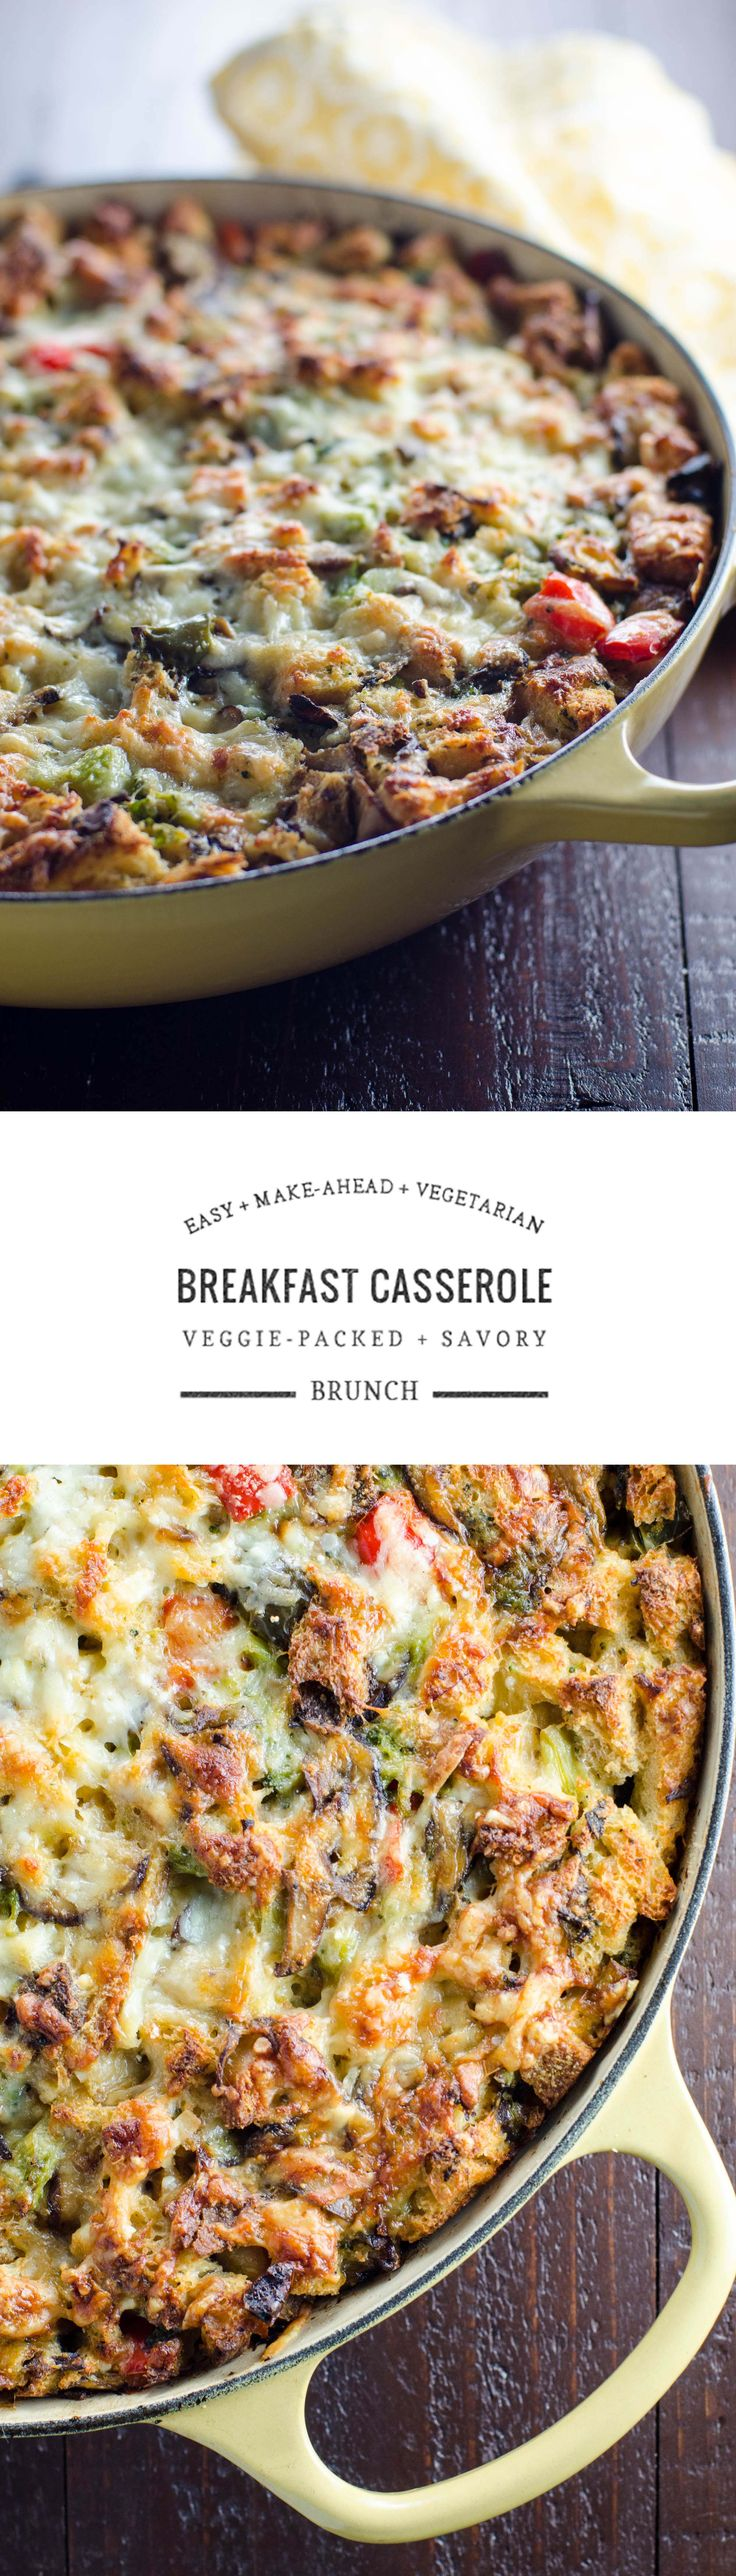 This savory vegetarian make-ahead breakfast casserole is brimming with vegetables. It's perfect to feed a crowd on Christmas morning or at a festive brunch.